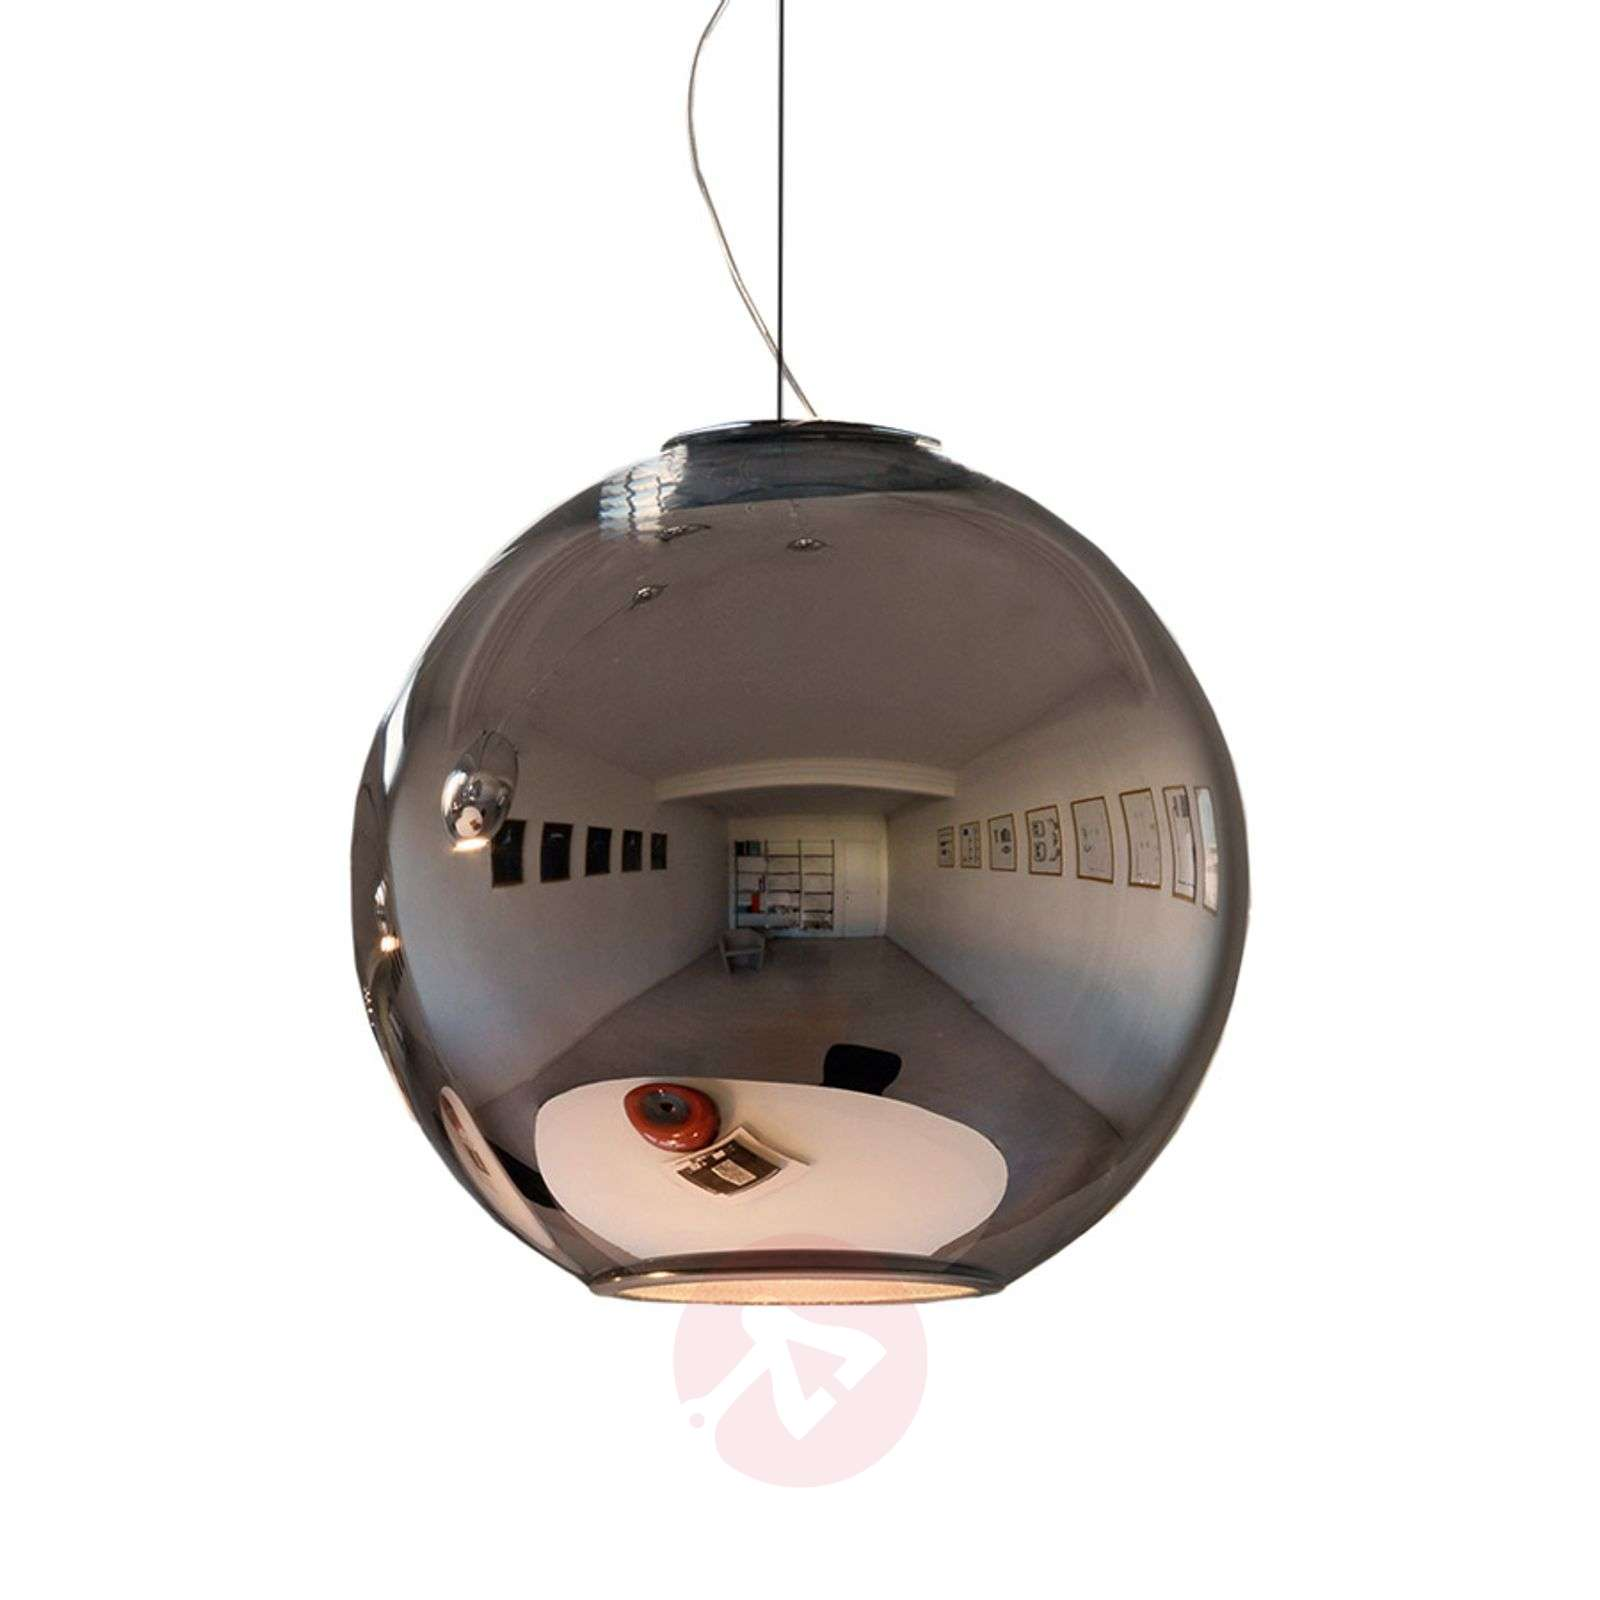 Suspension miroir GLOBO DI LUCE 30 cm-3520247-01